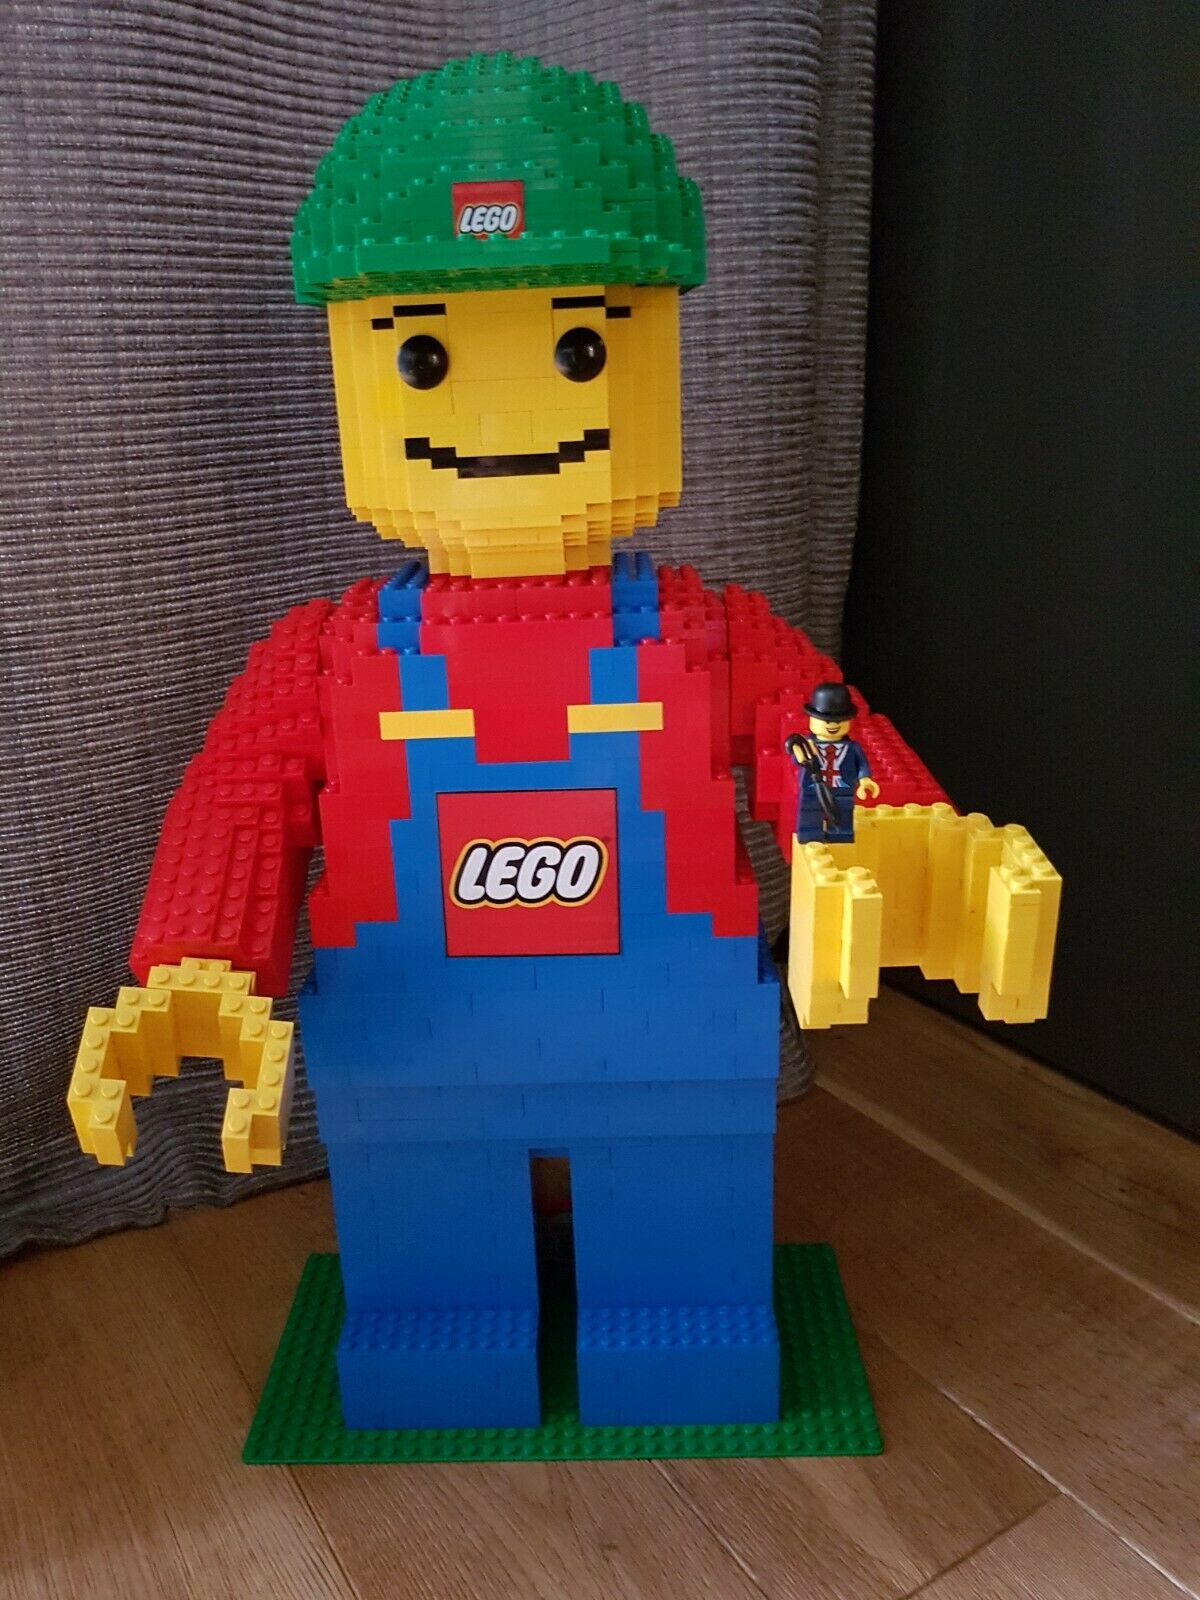 LEGO Sculptures GIANT Minifigure - 3723 - Ready To Build - Now With Stickers